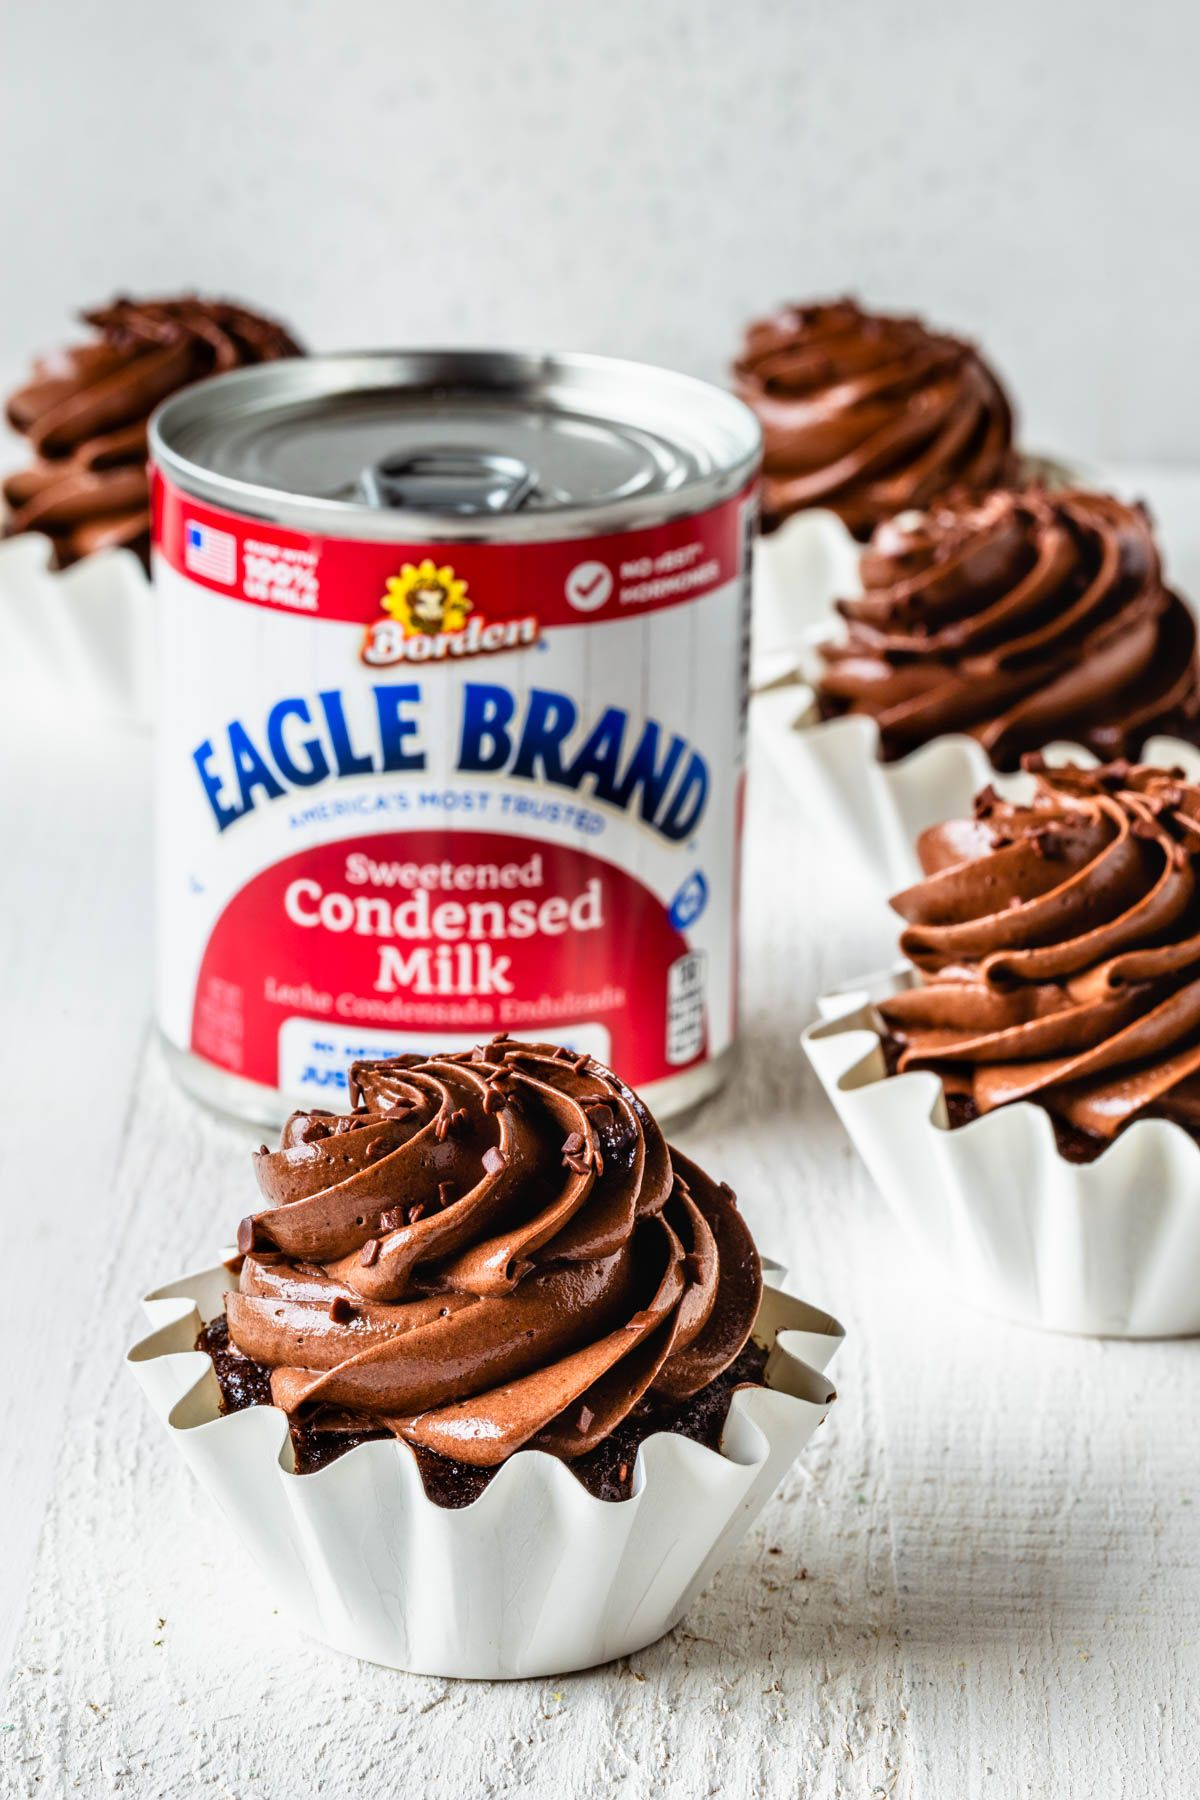 Chocolate Cupcakes With Sweetened Condensed Milk Frosting Recipe In 2020 Sweetened Condensed Milk Recipes Milk Recipes Sweet Snacks